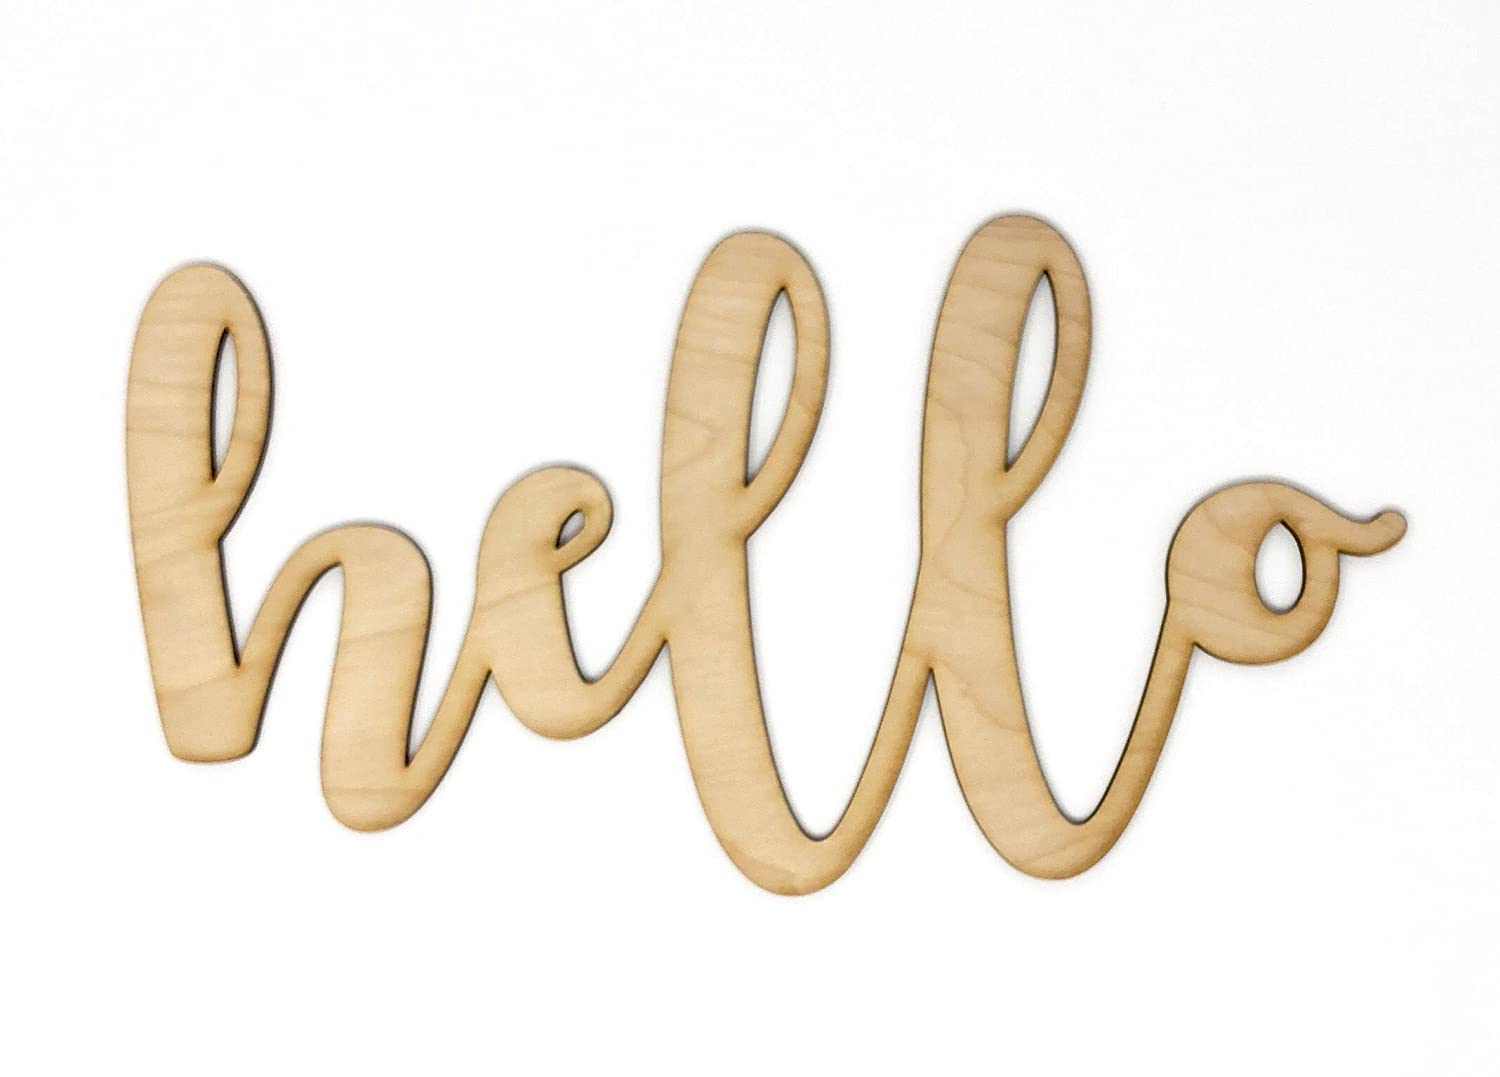 police wife wedding gift wood word cut out laser cut wall decor wood words wooden wall art Always come home leo wife home decor